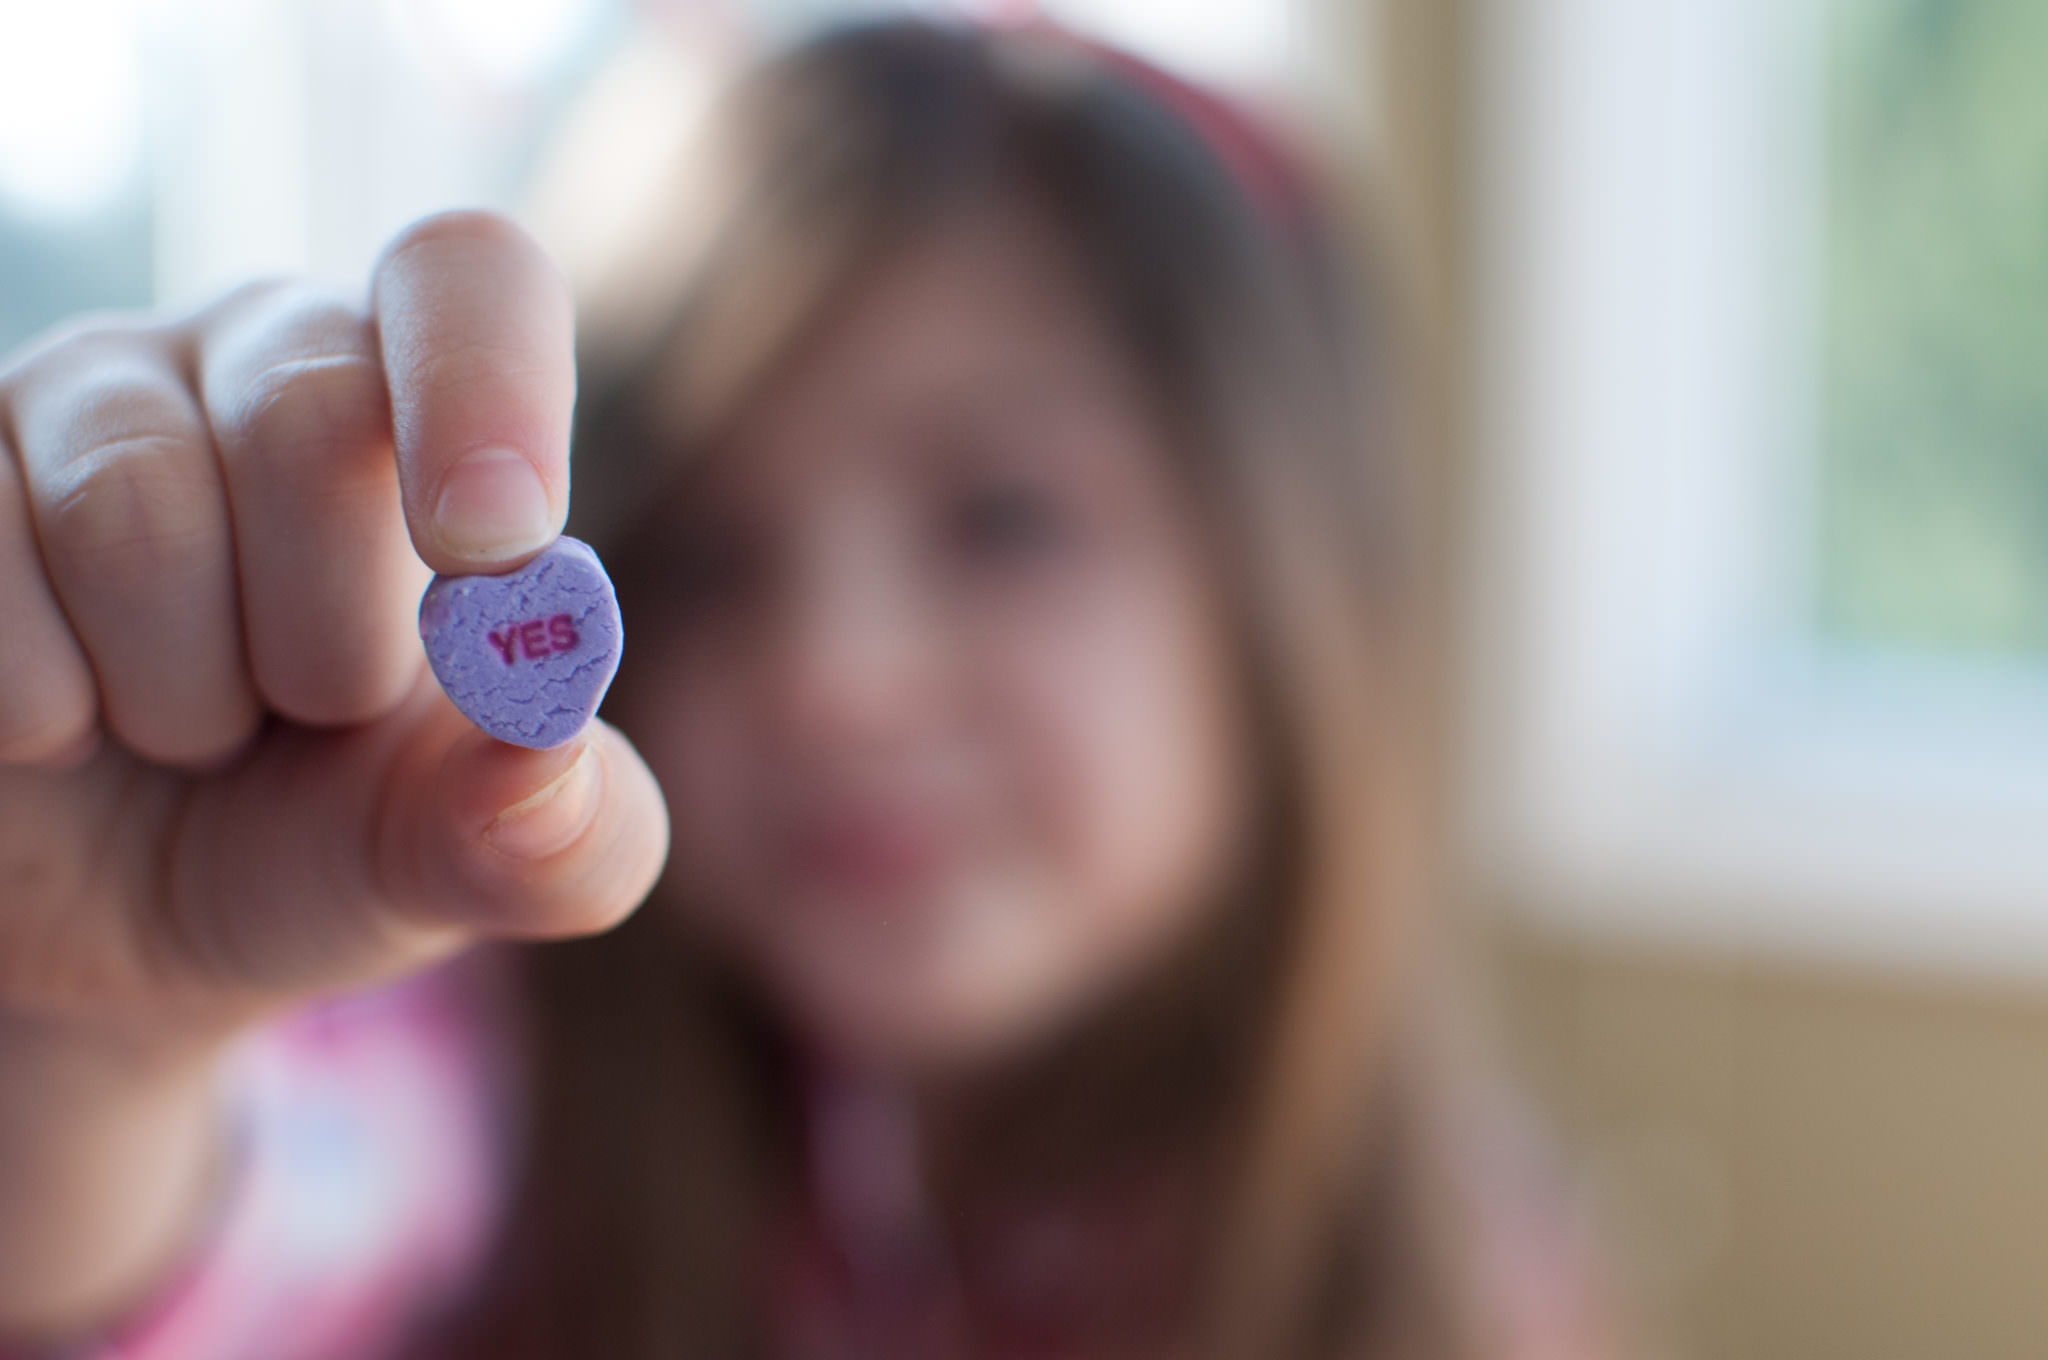 Girl holding Yes Conversation Heart, Valentine's Day Photography